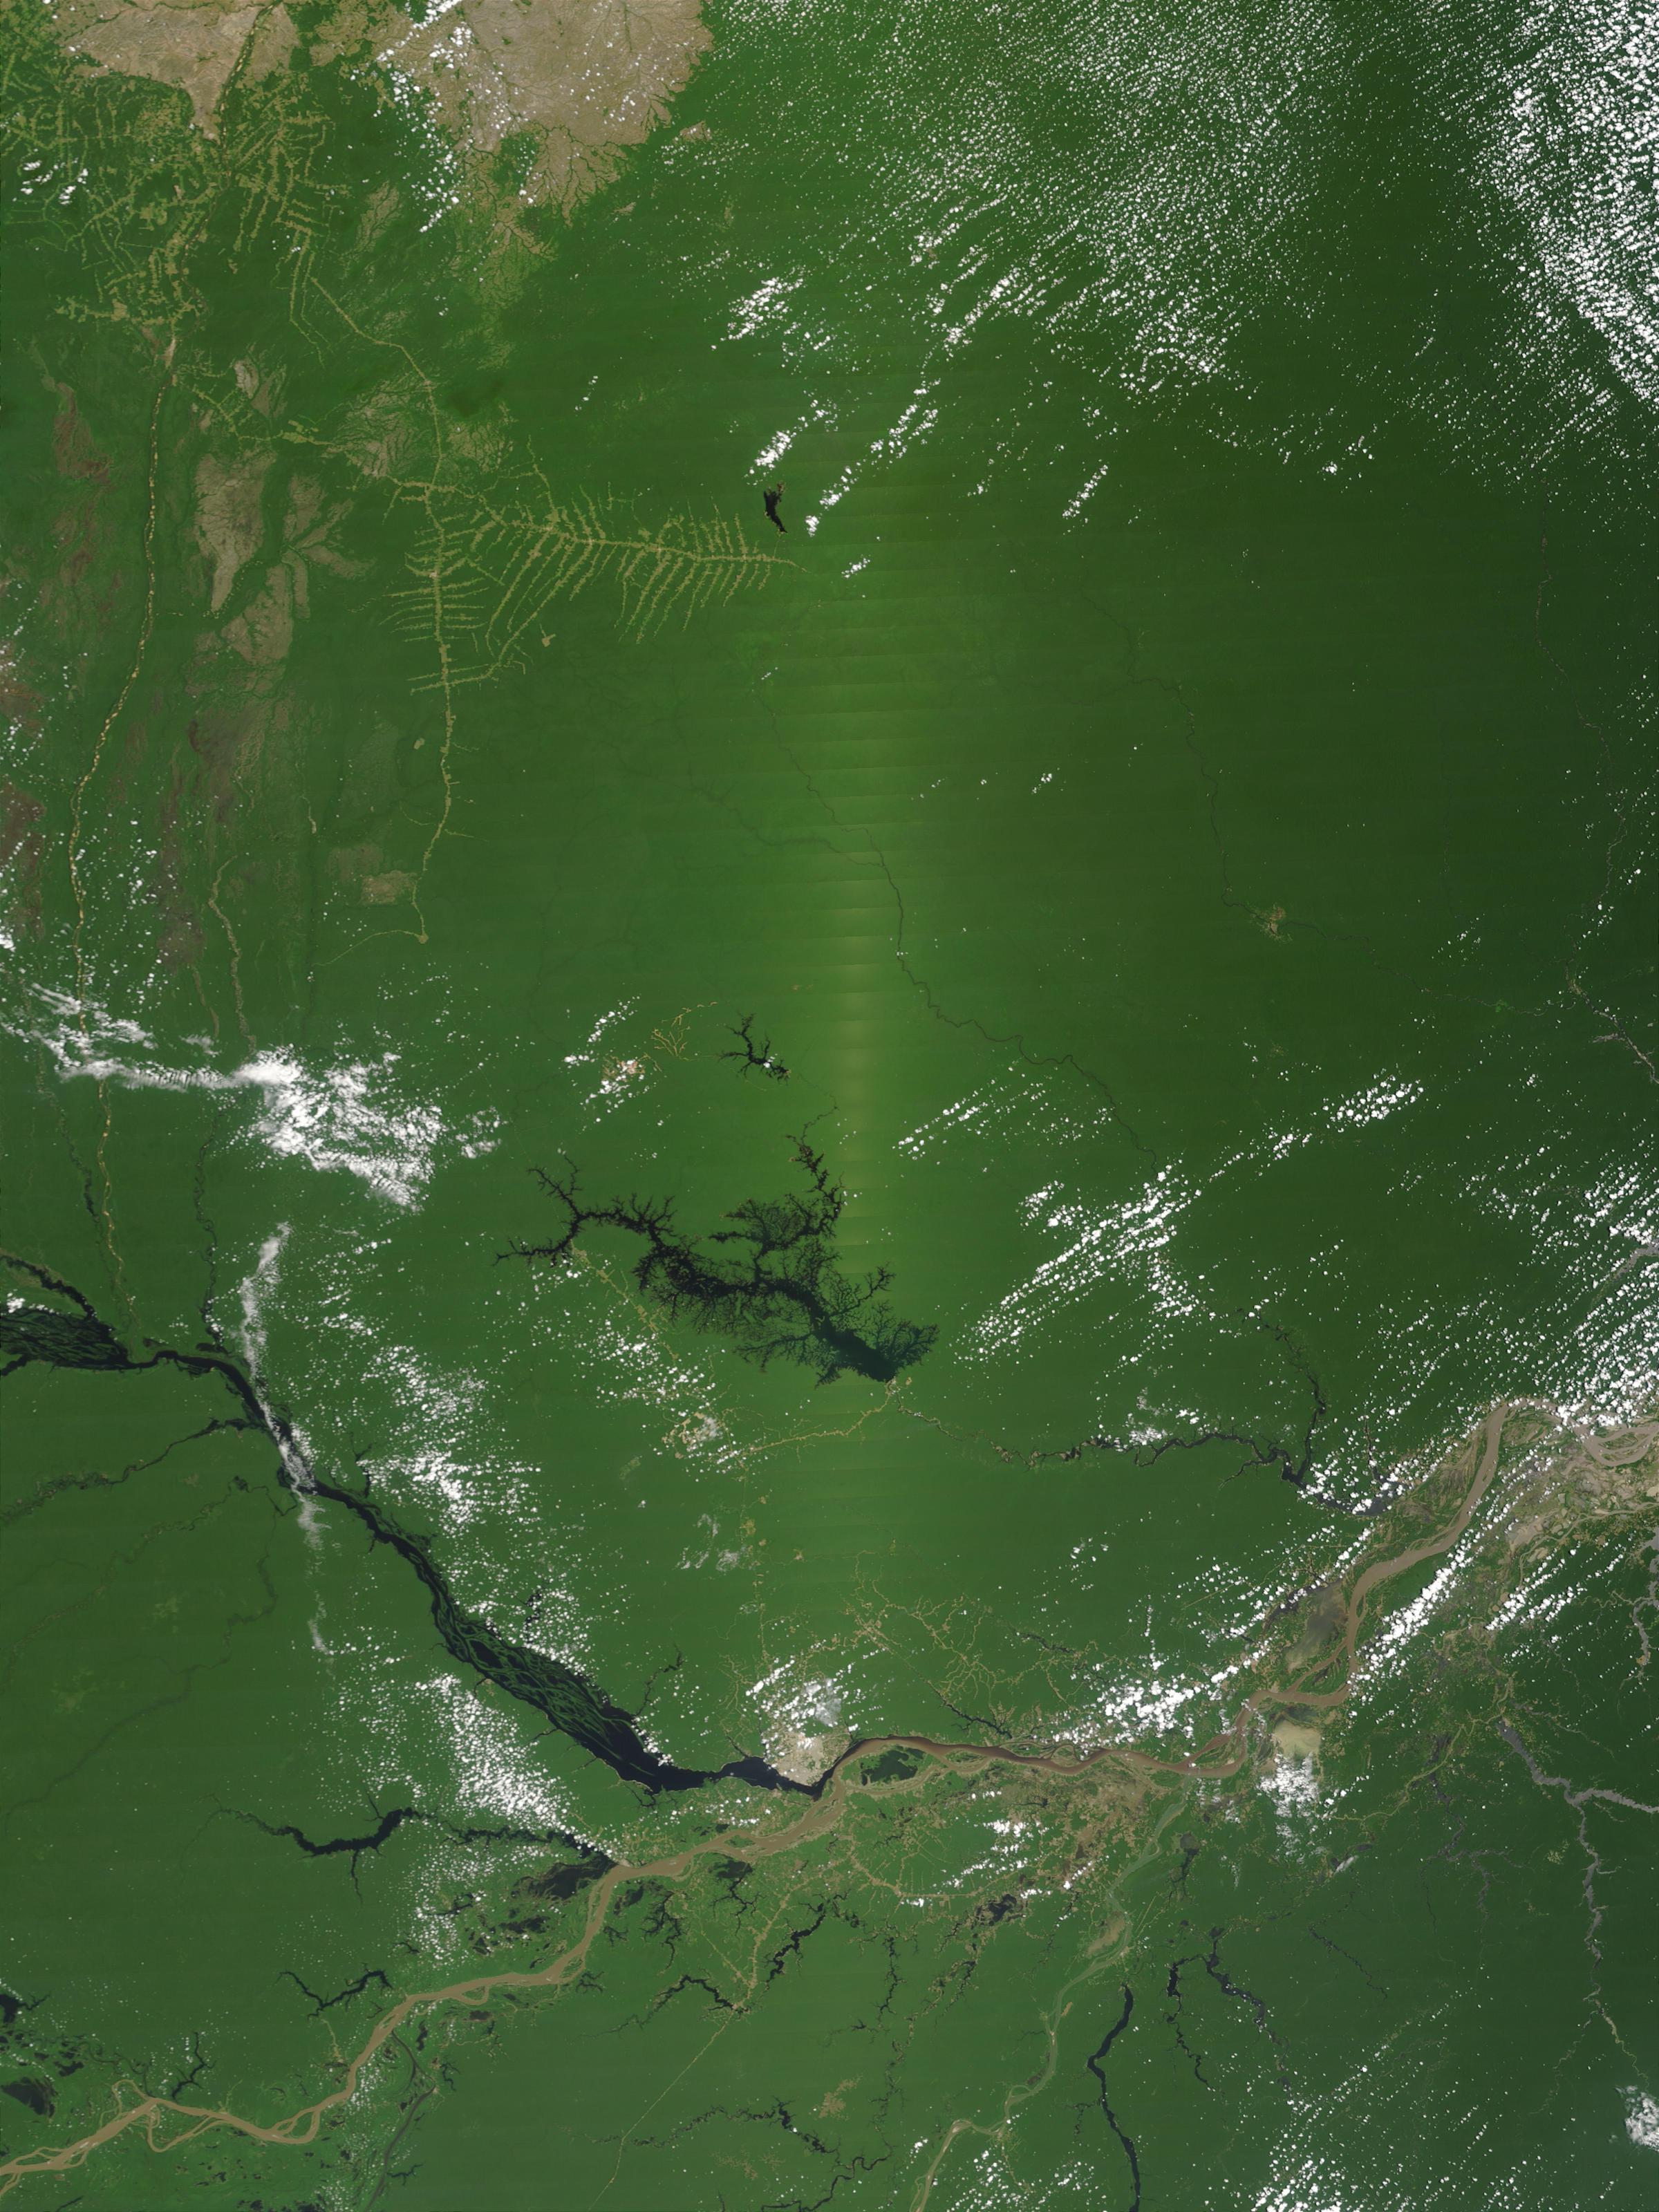 Vegetation hot spot over Northern Brazil